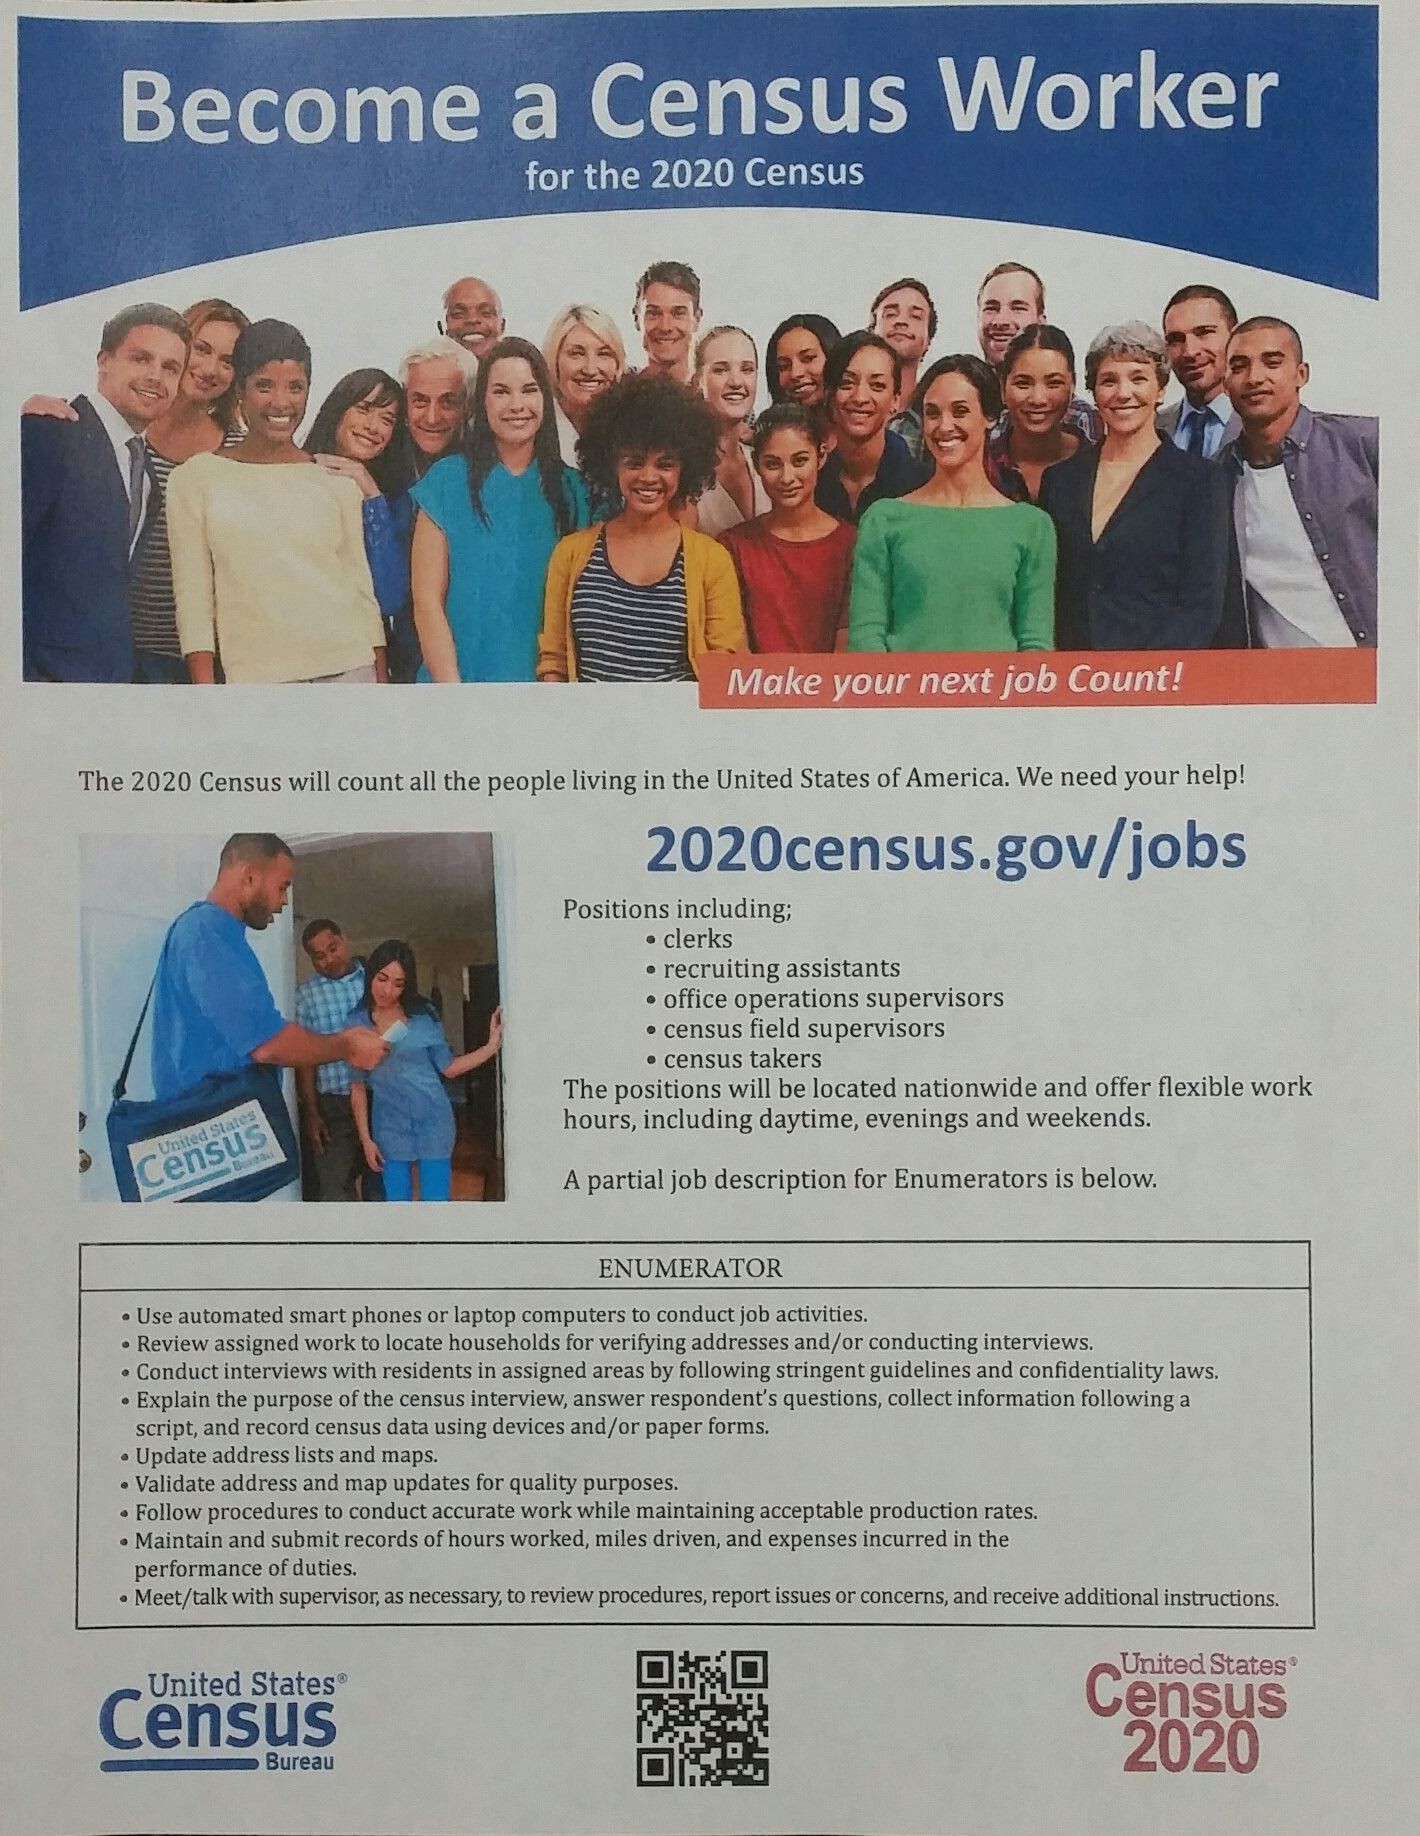 Become a Census Worker for Census 2020 Flyer